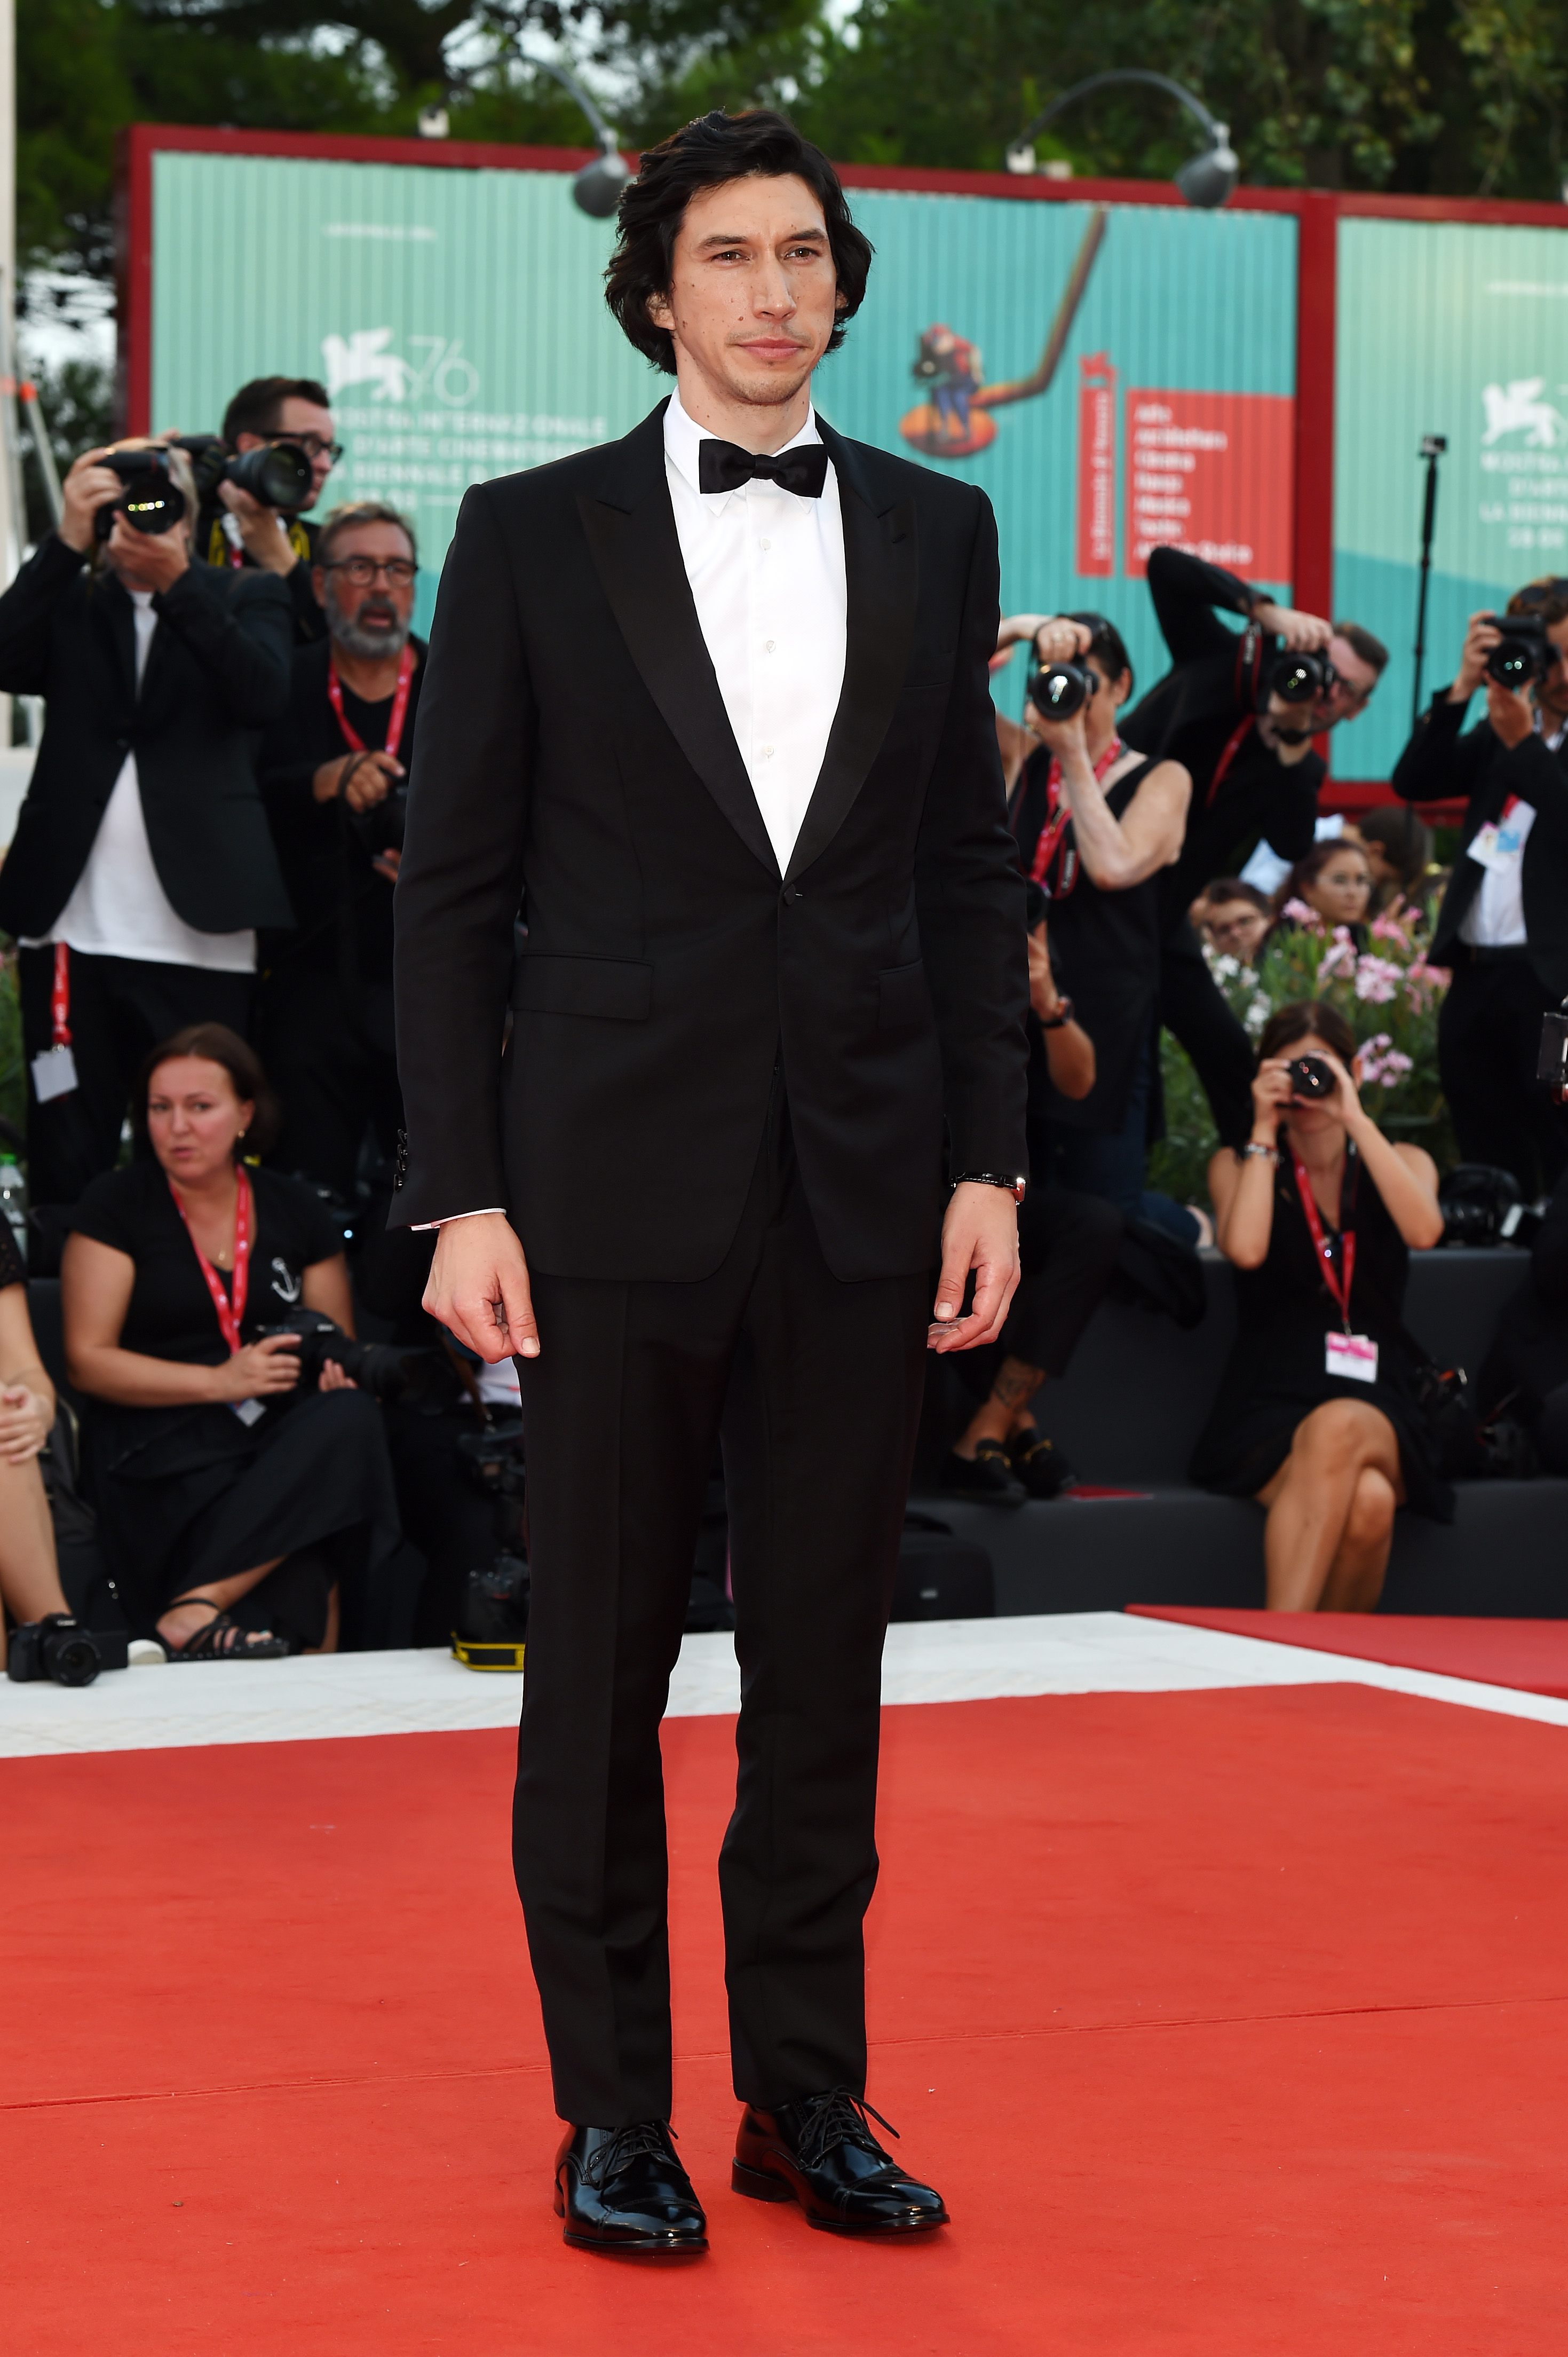 VENICE, ITALY - AUGUST 29: Actor Adam Driver walks the red carpet ahead of the